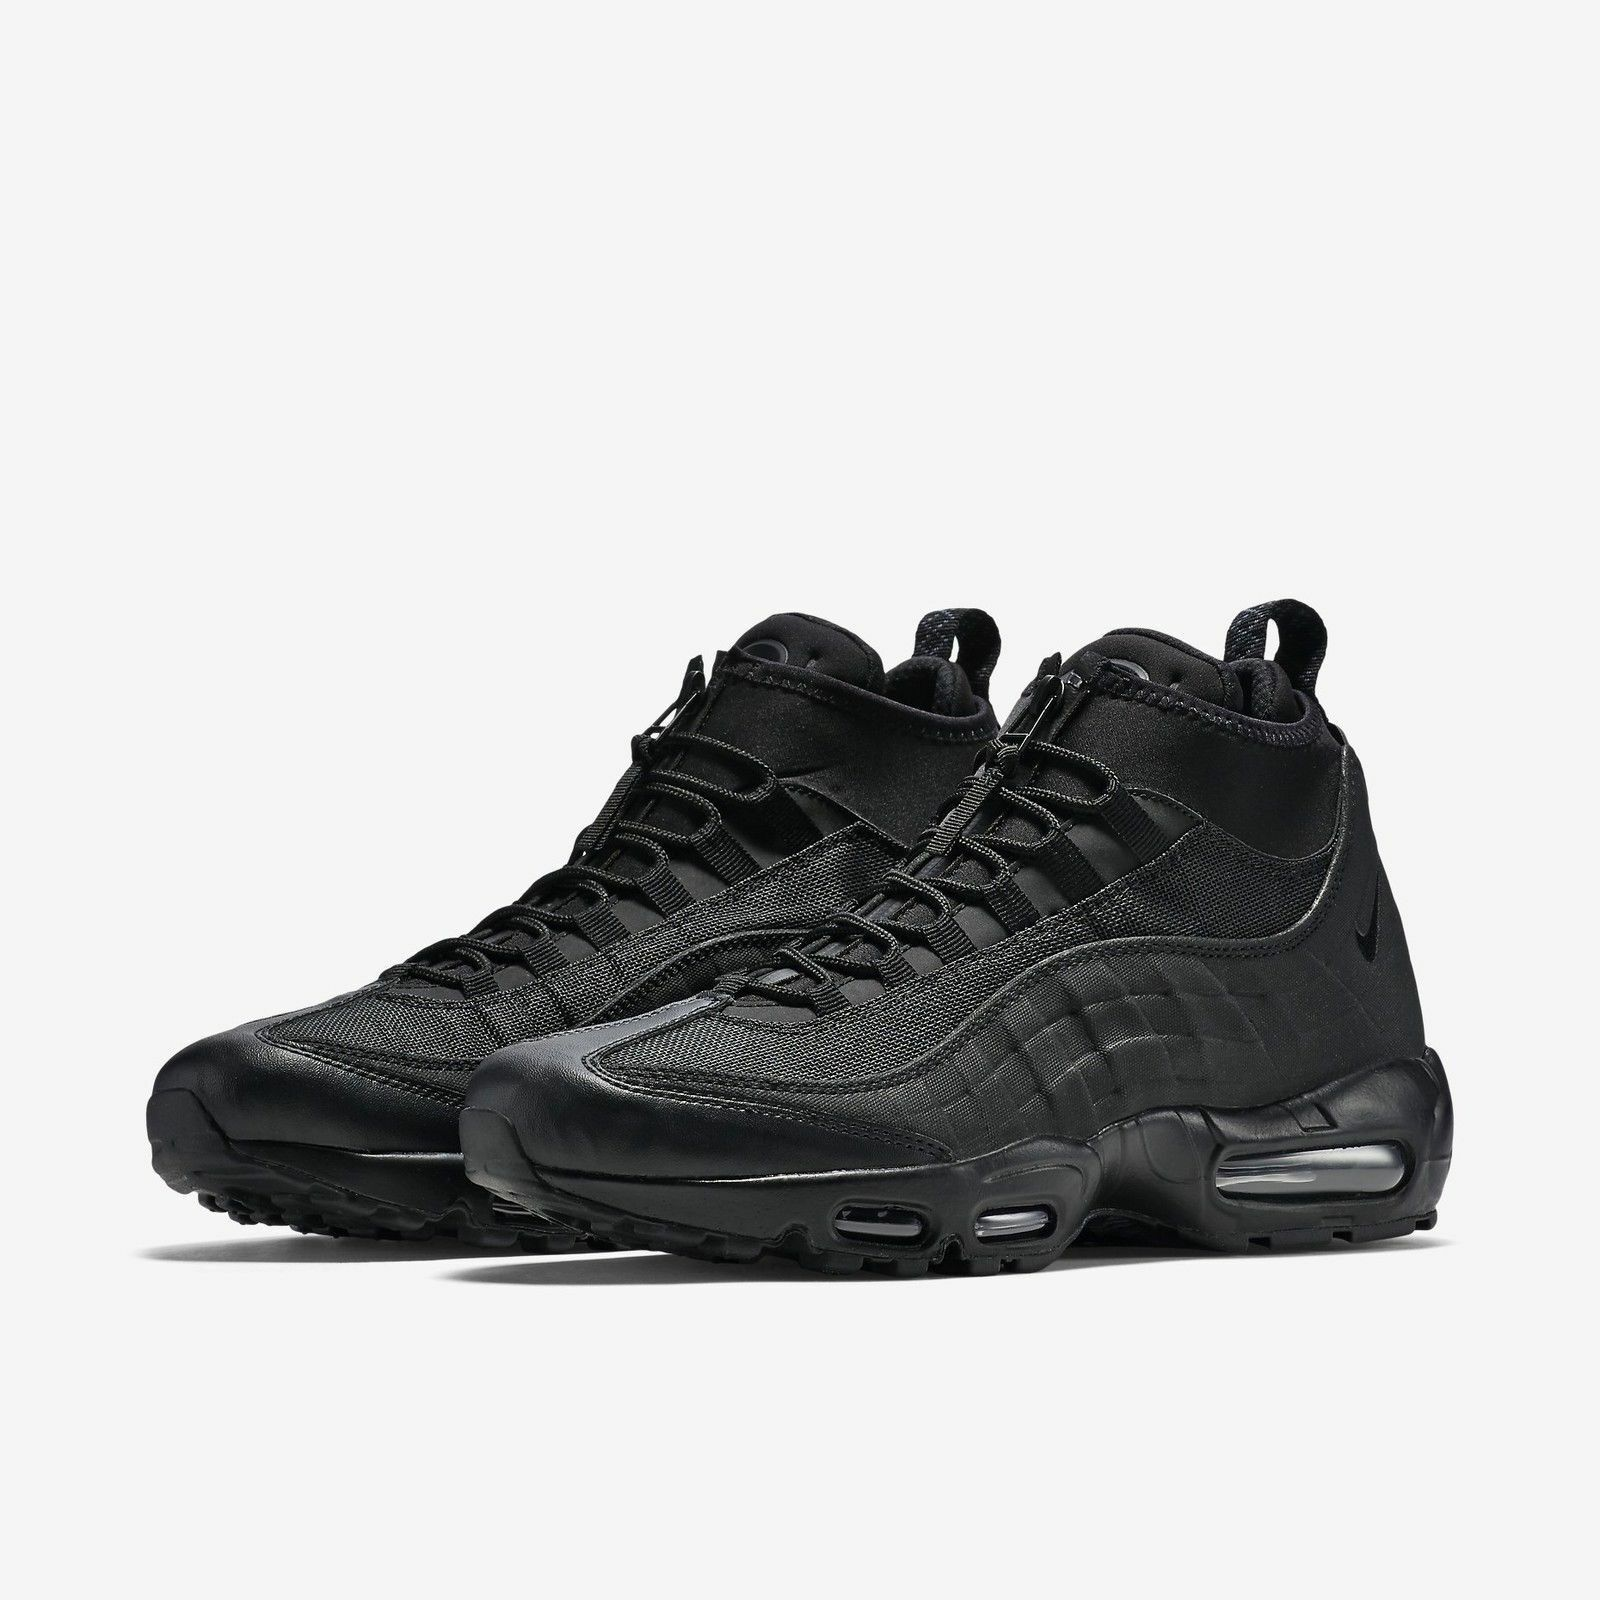 Nike Air Max 95 Winter Black/Black All Triple Blackout Zip Sneakerboot Boot NEW New shoes for men and women, limited time discount